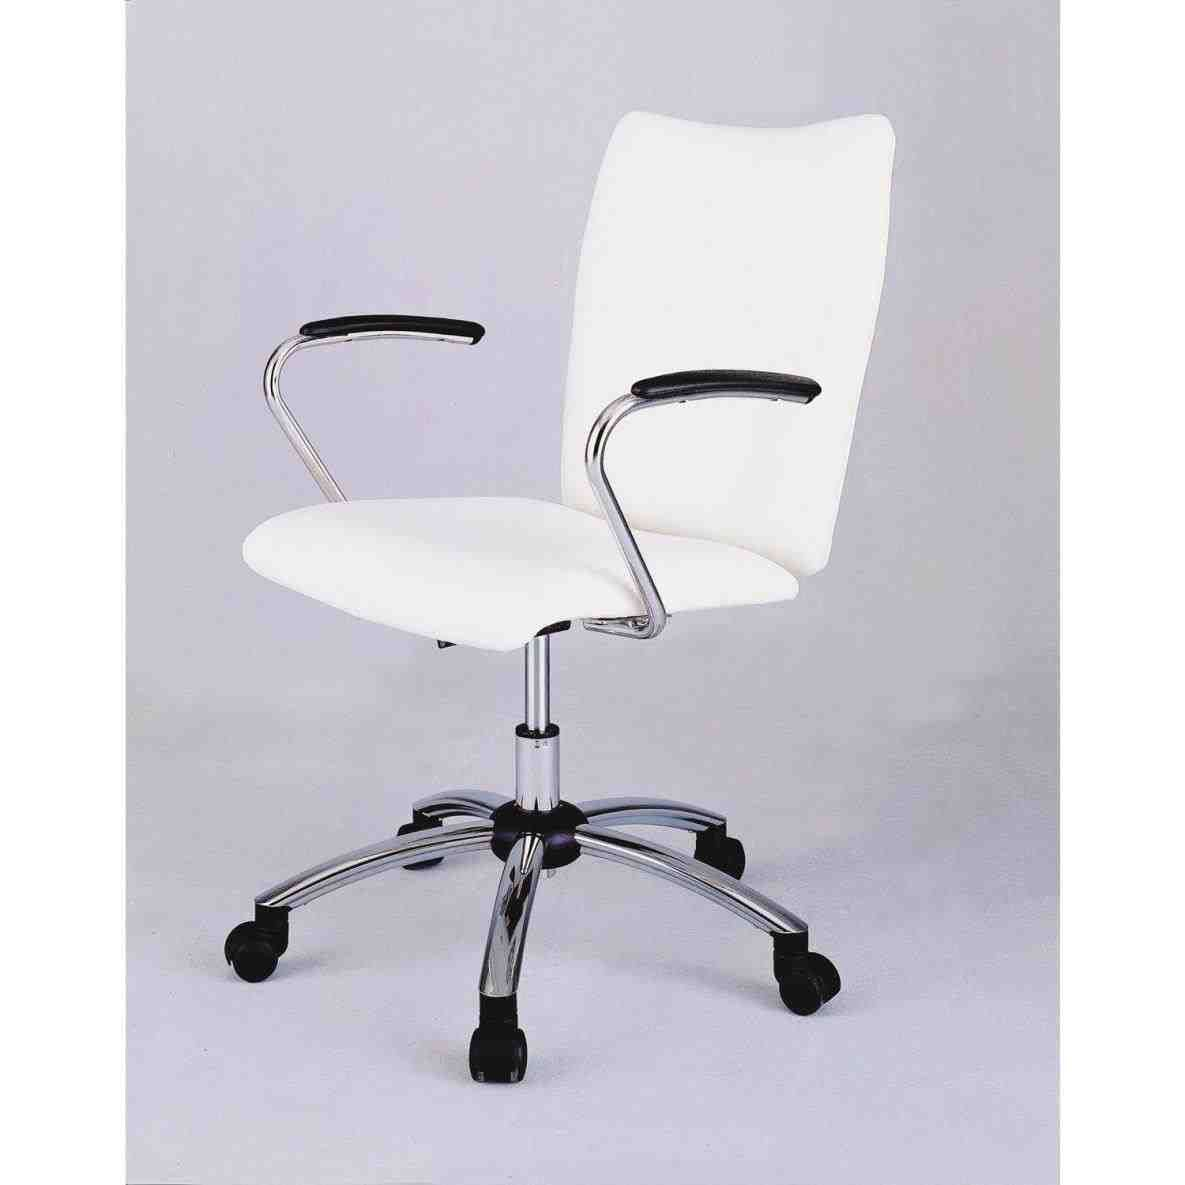 Cheap Office Chairs With Arms Full Size Of Office Chairs Swivel Office Chair Office Chairs On Sale Er White Desk Chair Office Chair White Rolling Desk Chair